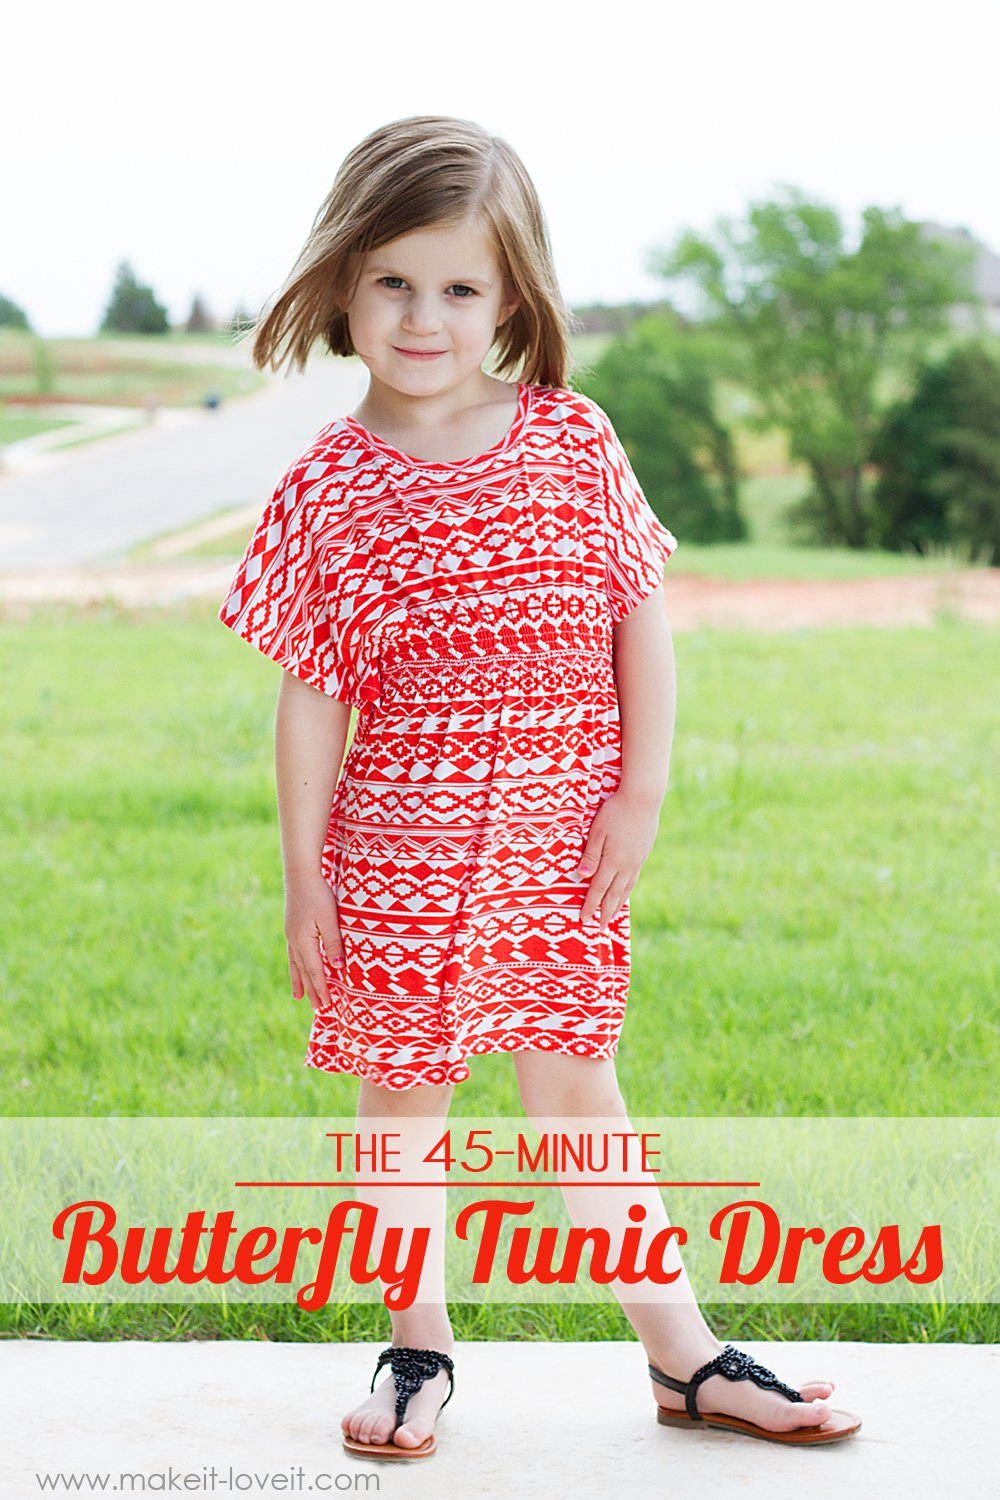 The 45-minute butterfly tunic dress (…for girls and women both)